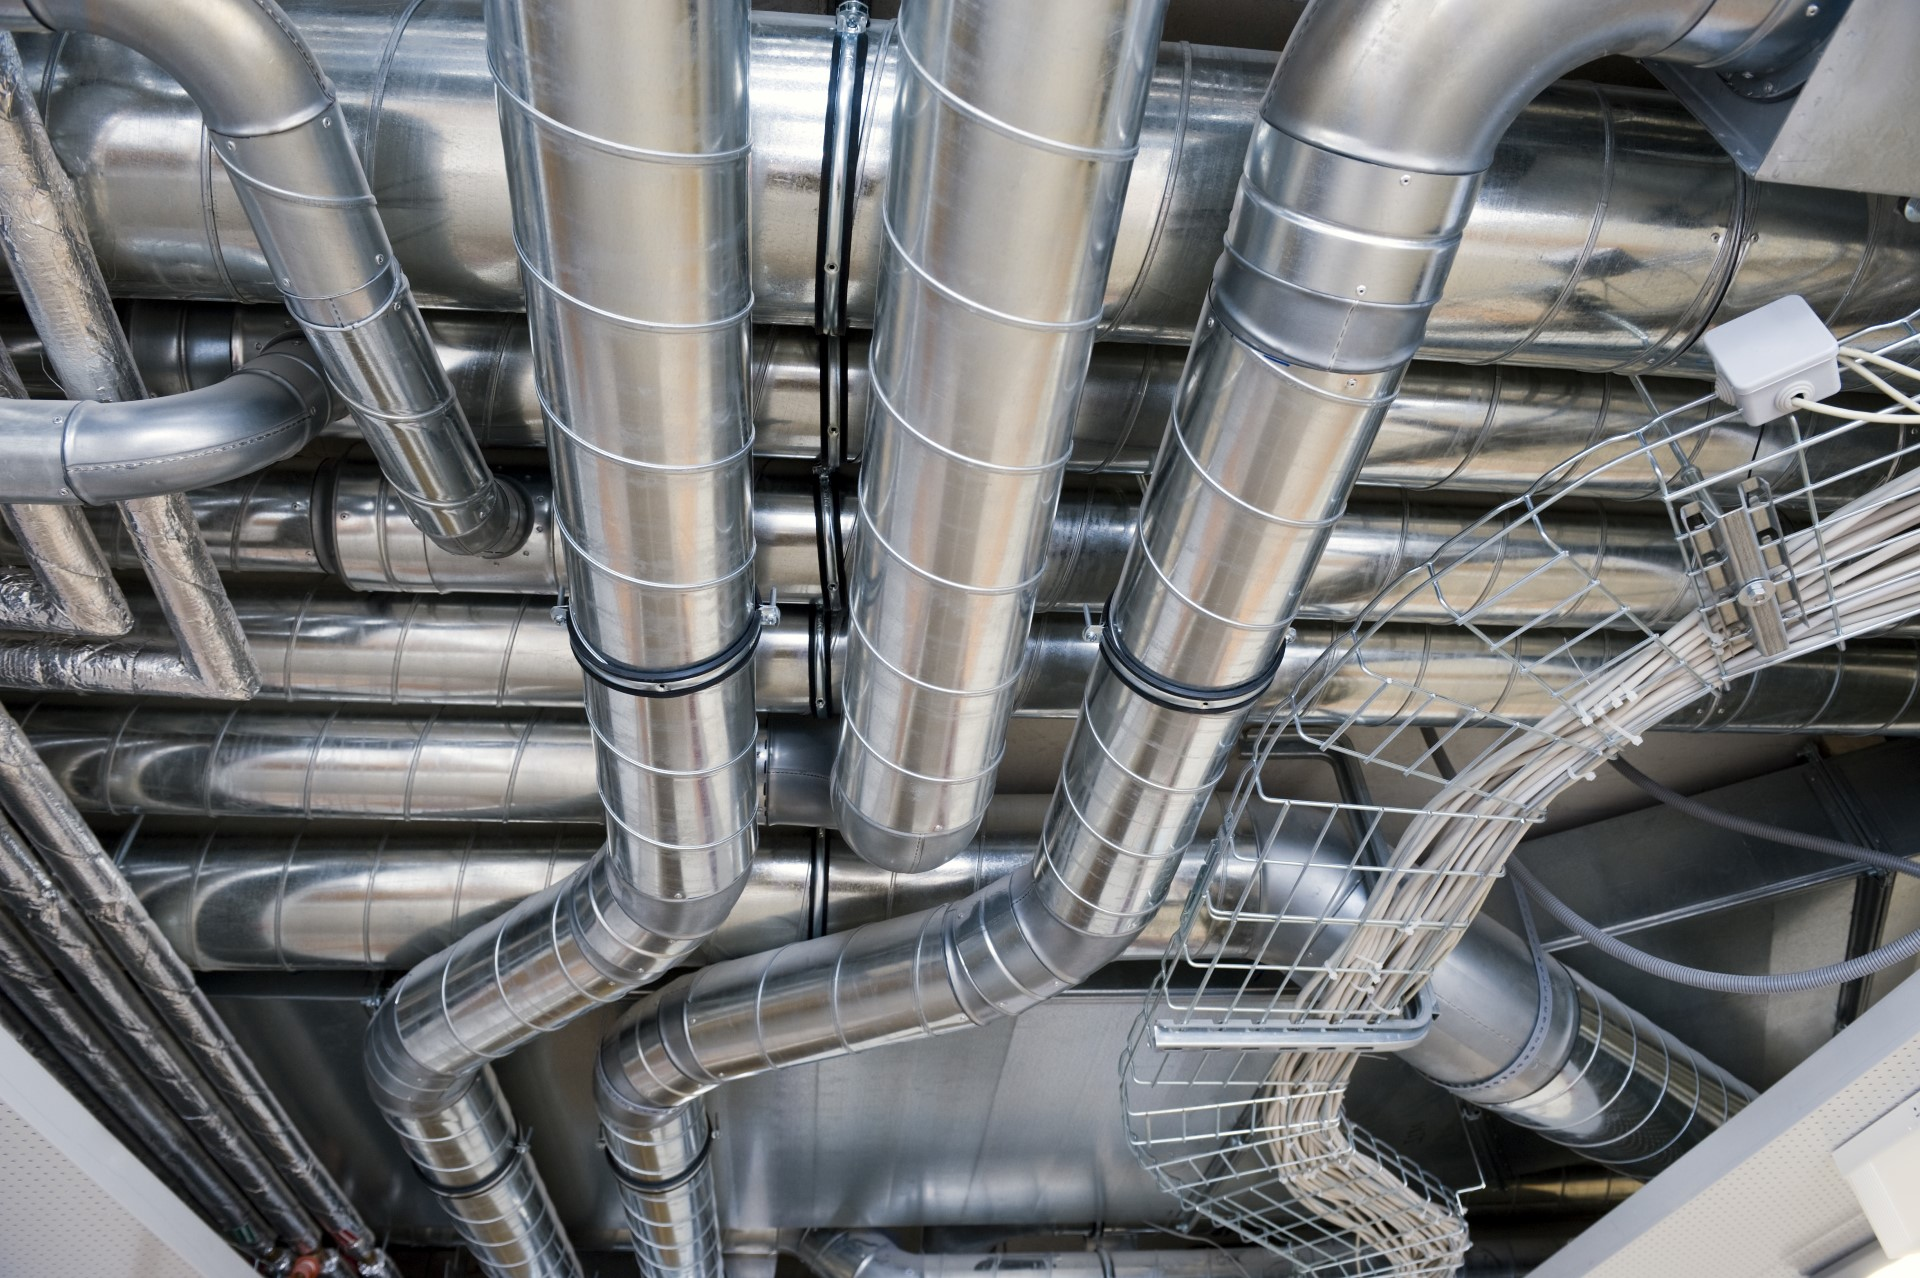 Vent pipes1